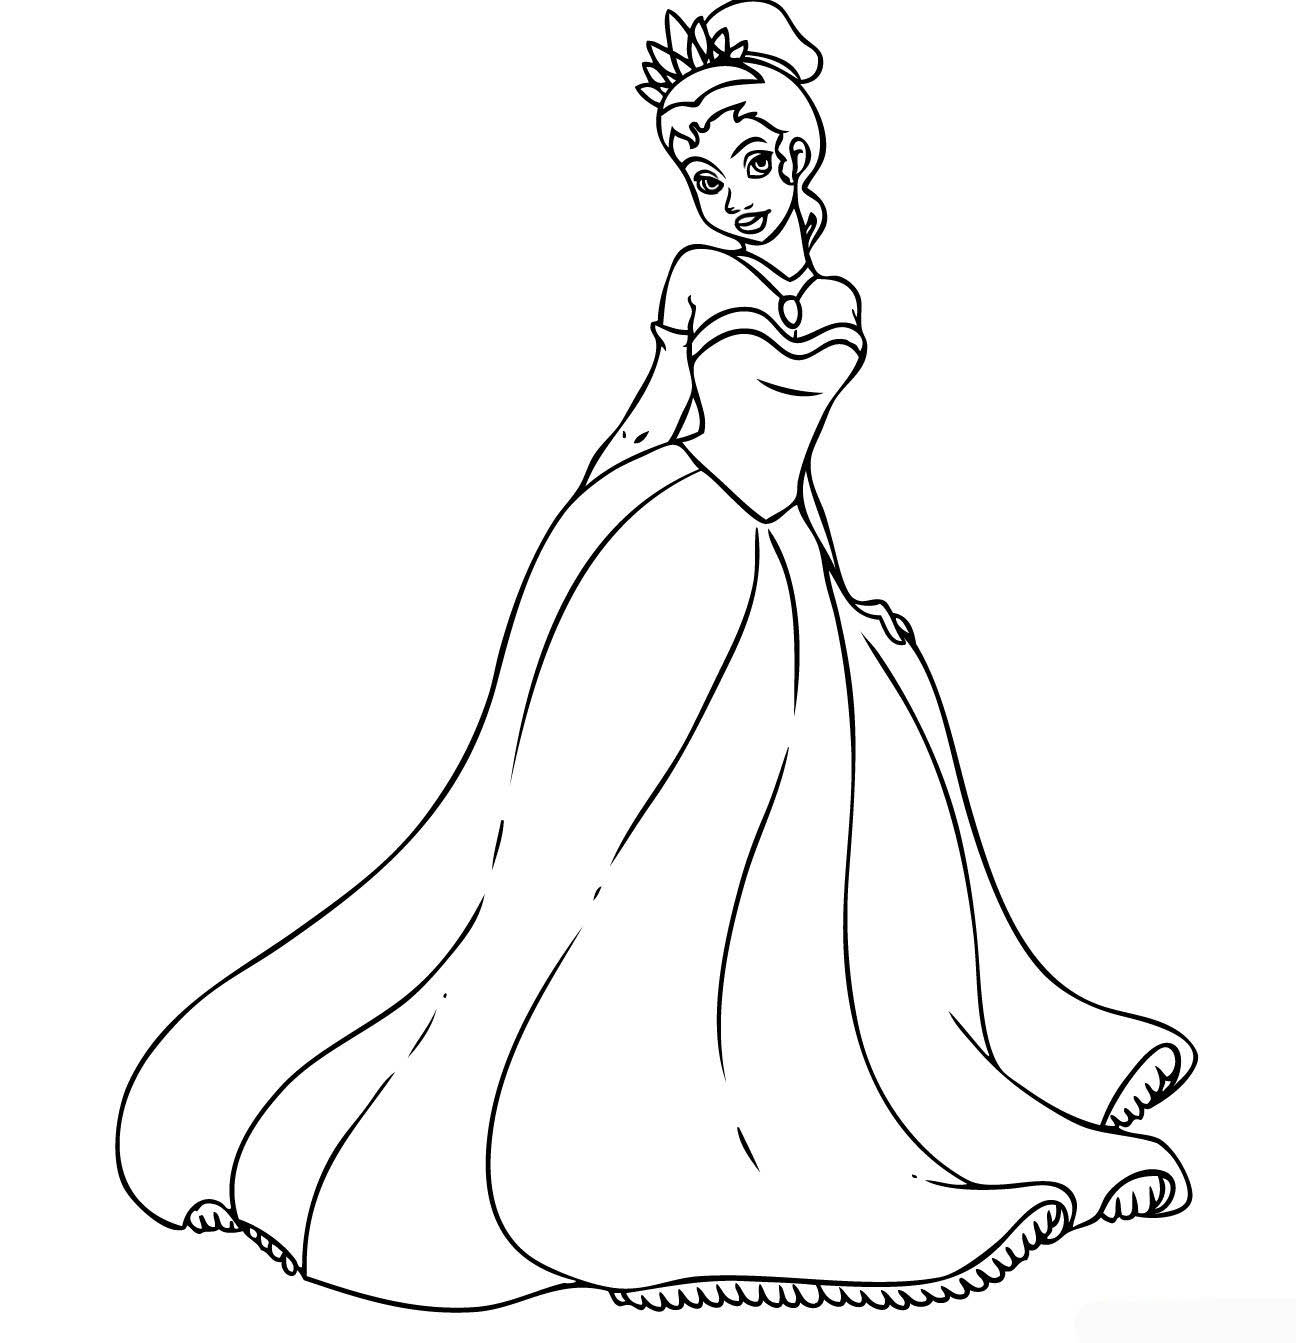 princess coloring pages online - photo#12